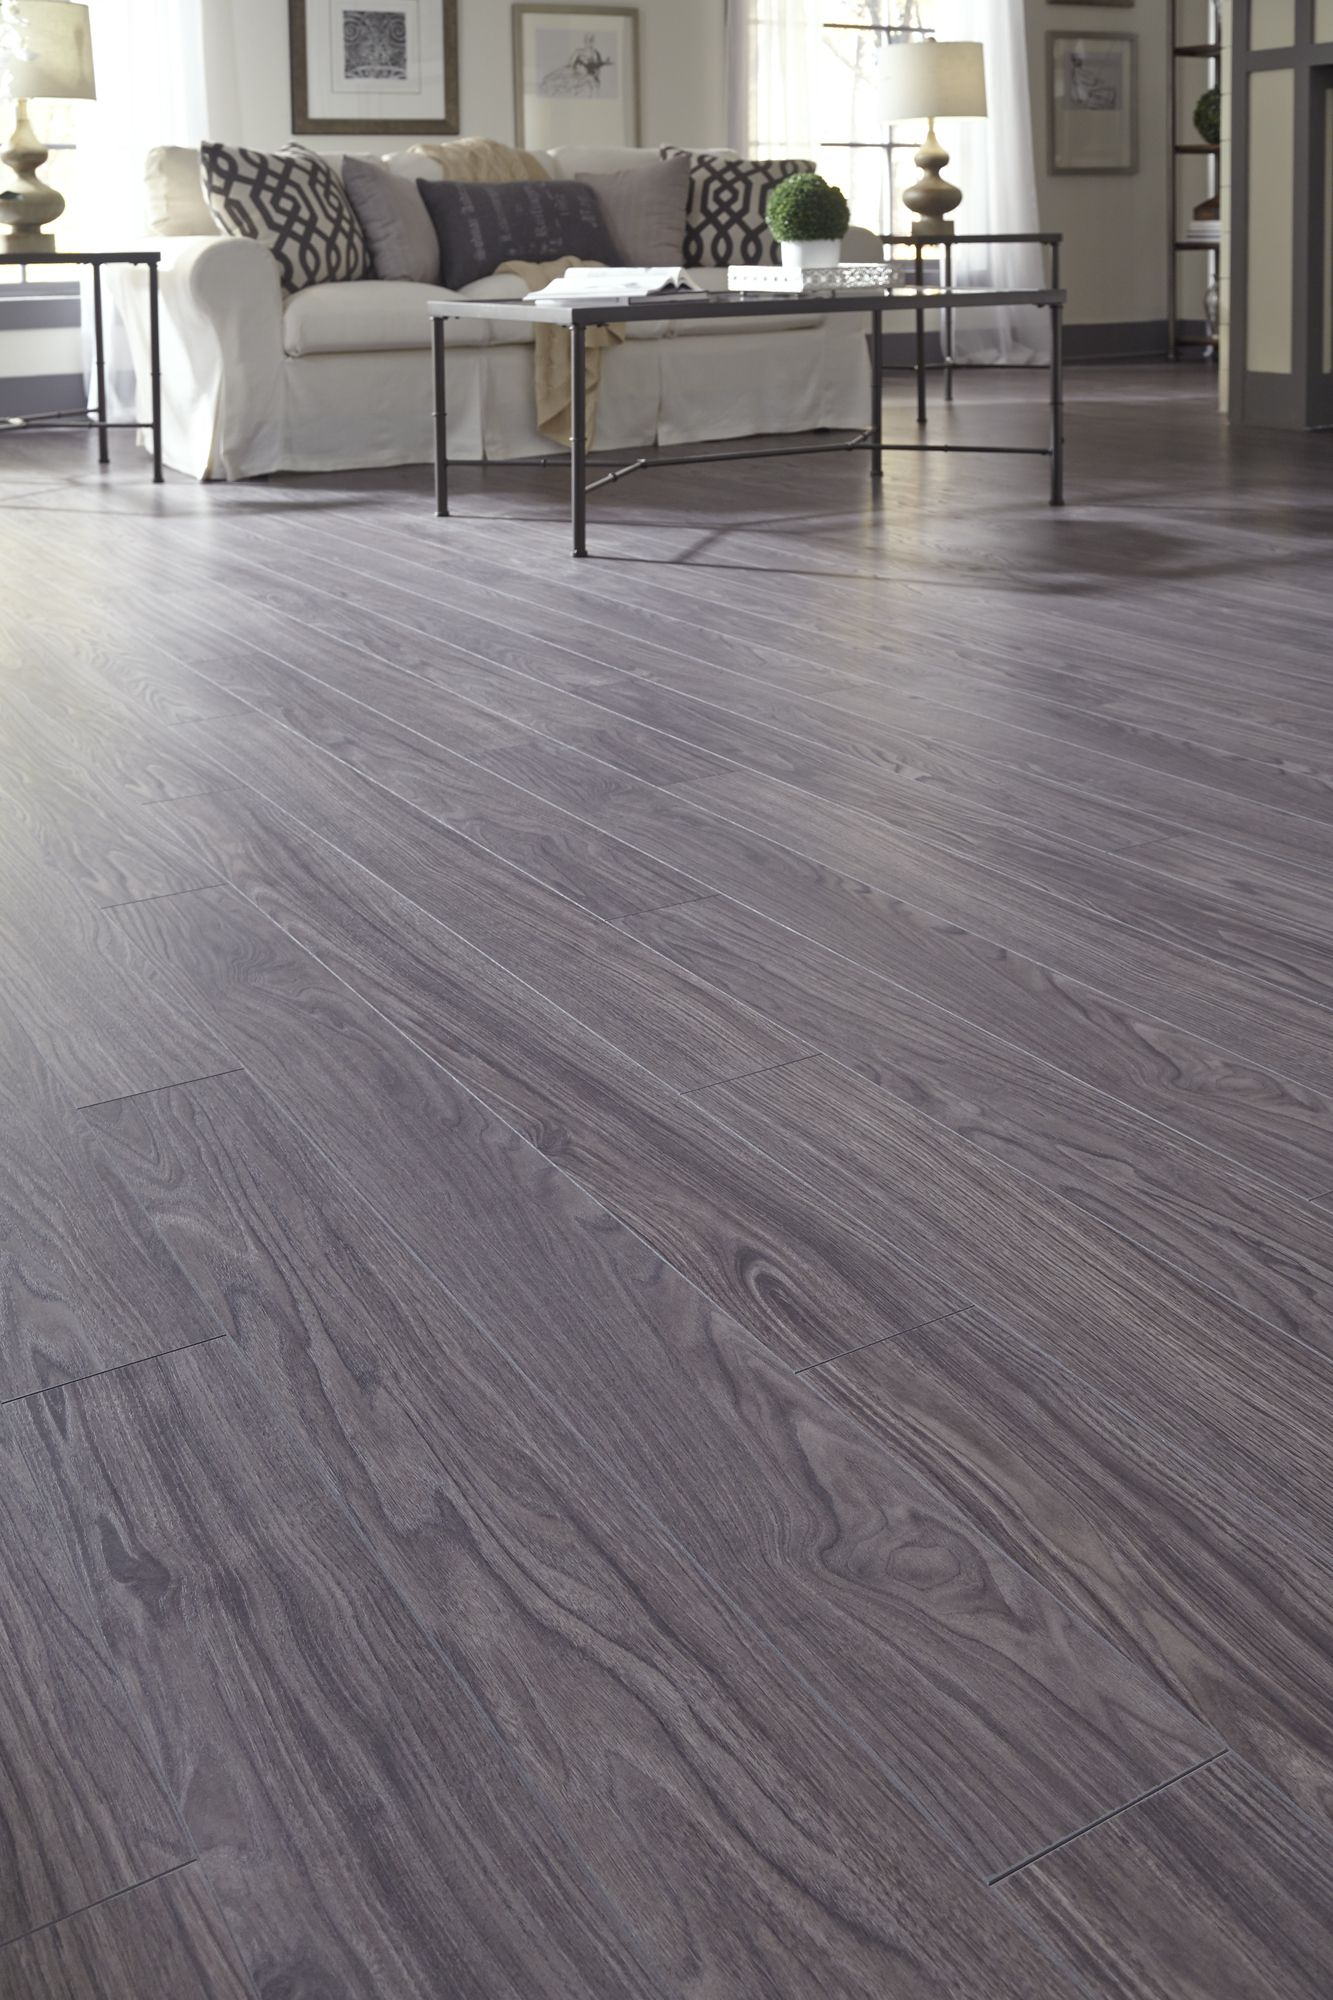 High Quality Laminate Flooring the best flooring for diy wall design is laminate high quality laminate flooring has an authentic rich hardwood look that translates into a stylish wall Laminate Is In Budget And Is Durable And Lasts A Very Long Time We